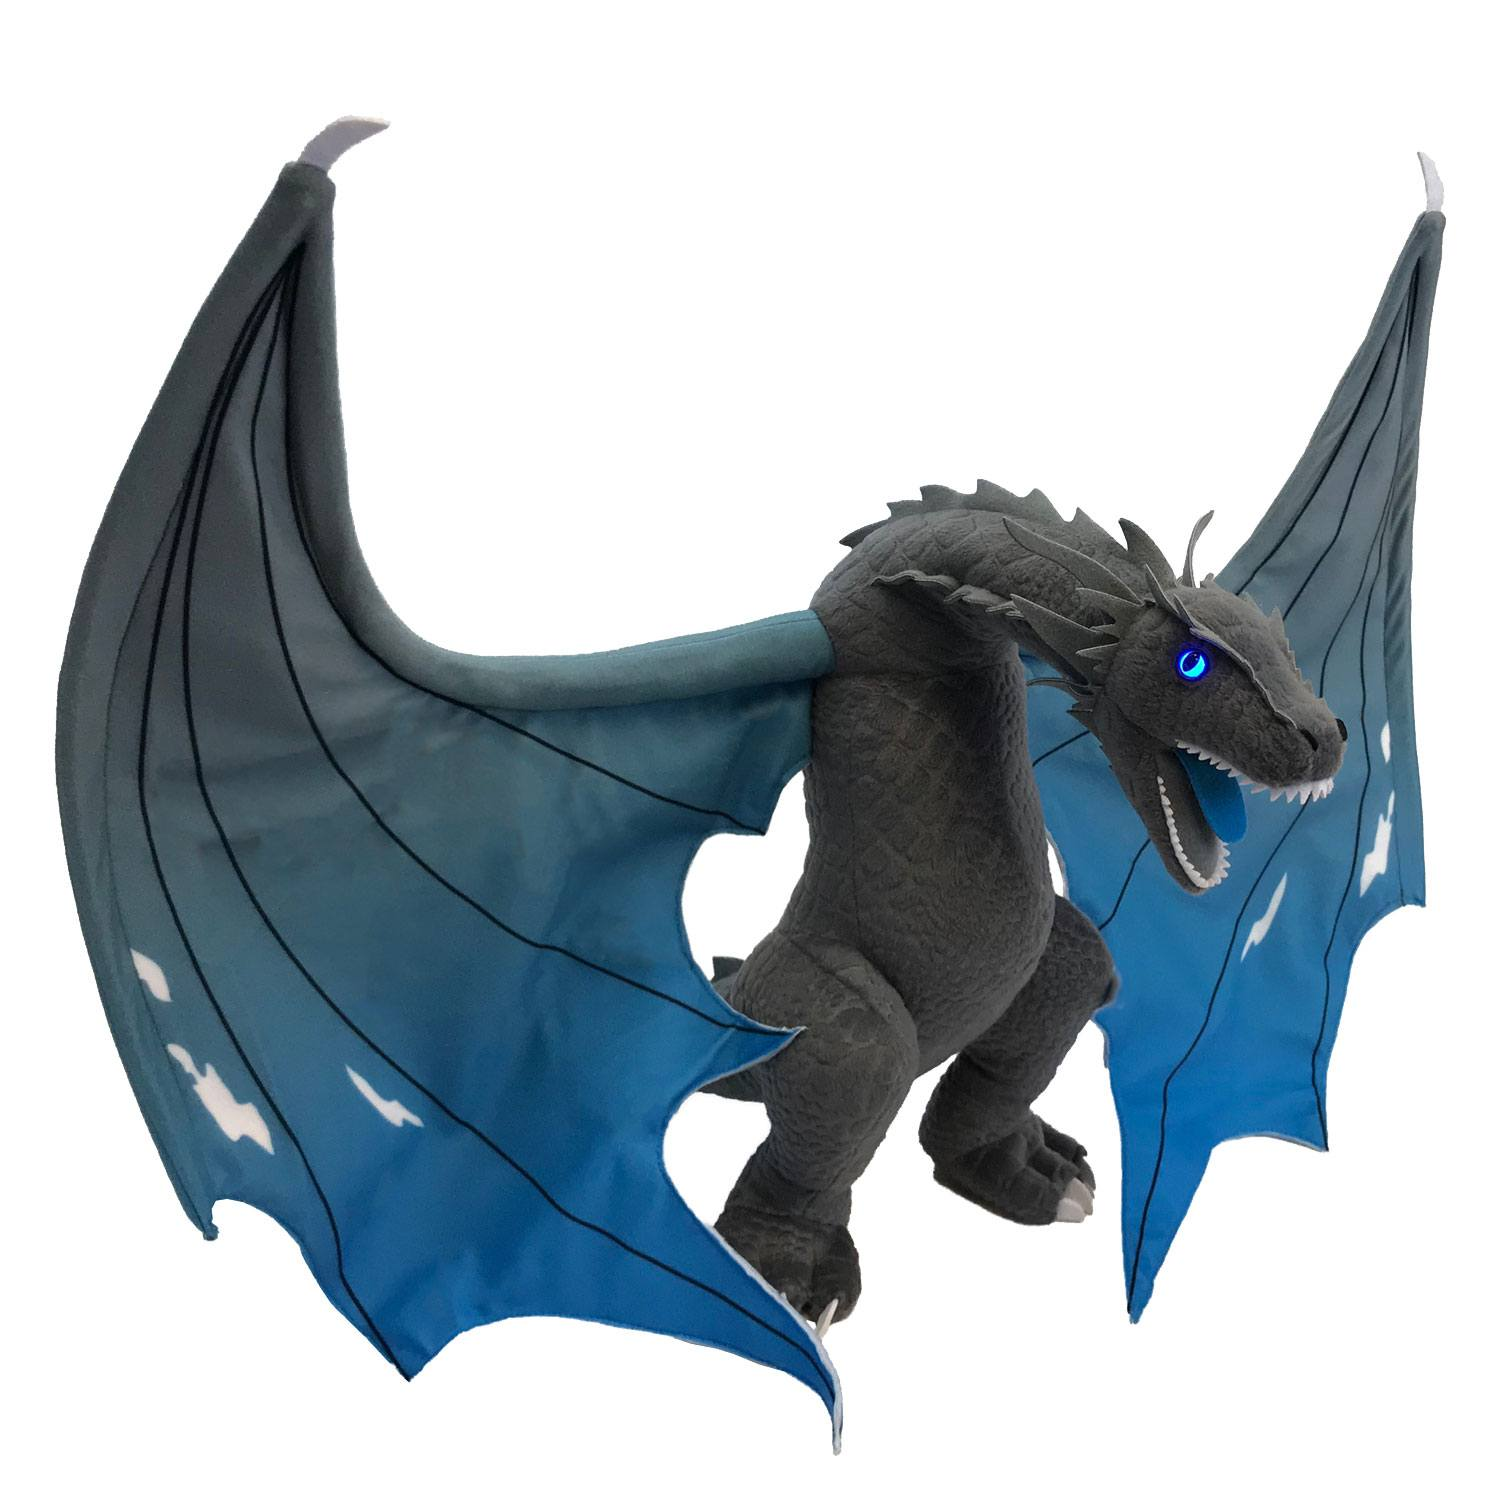 Game of Thrones Light-Up Plush Figure Icy Viserion 48 cm